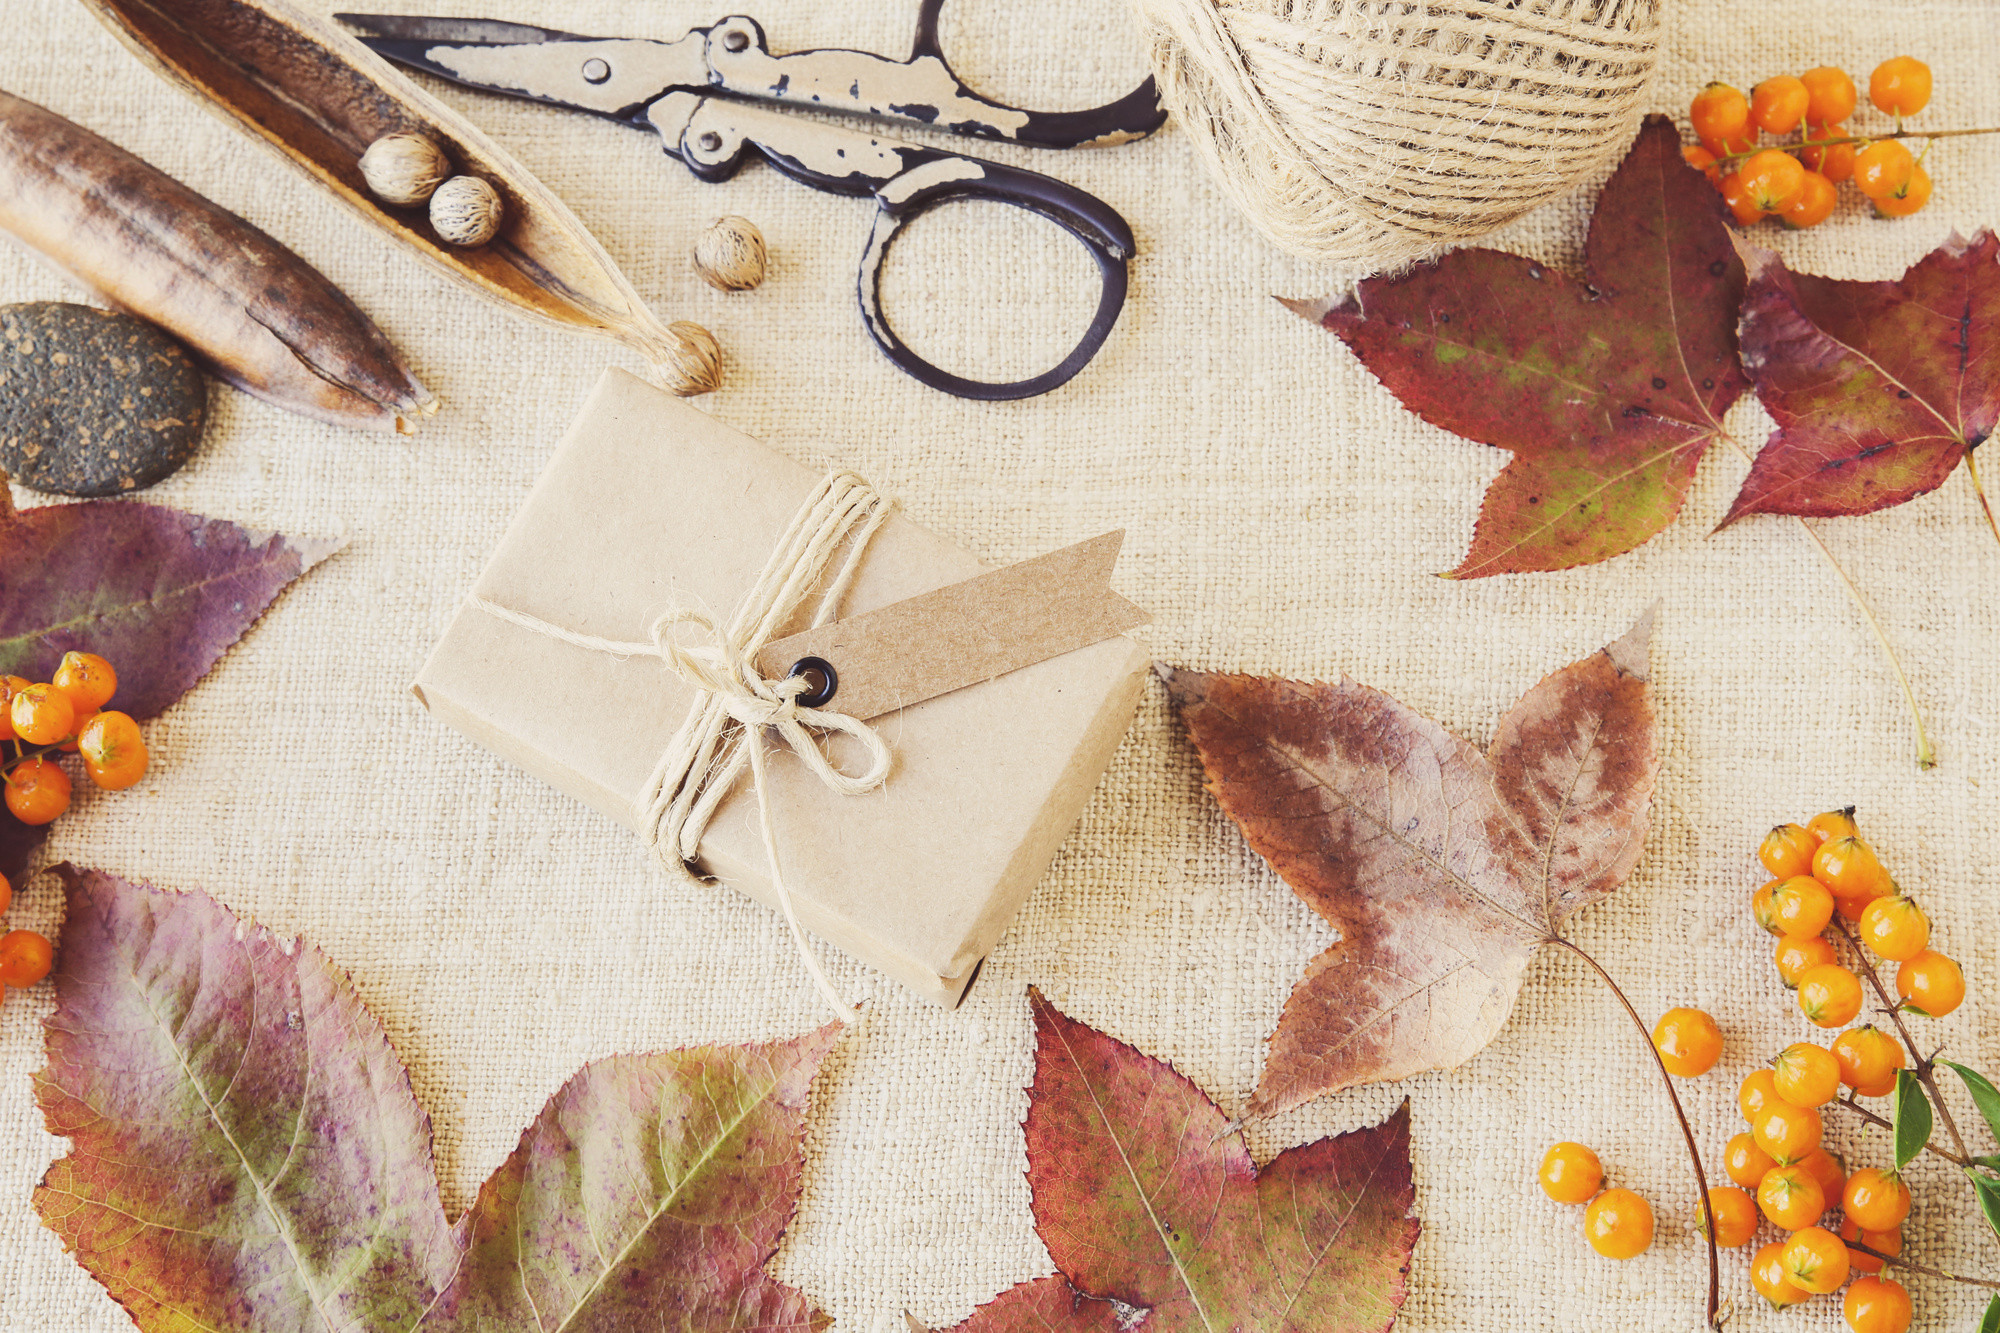 Craft Activities For Adults  Ten Fall Craft Ideas for Adults to Unwind